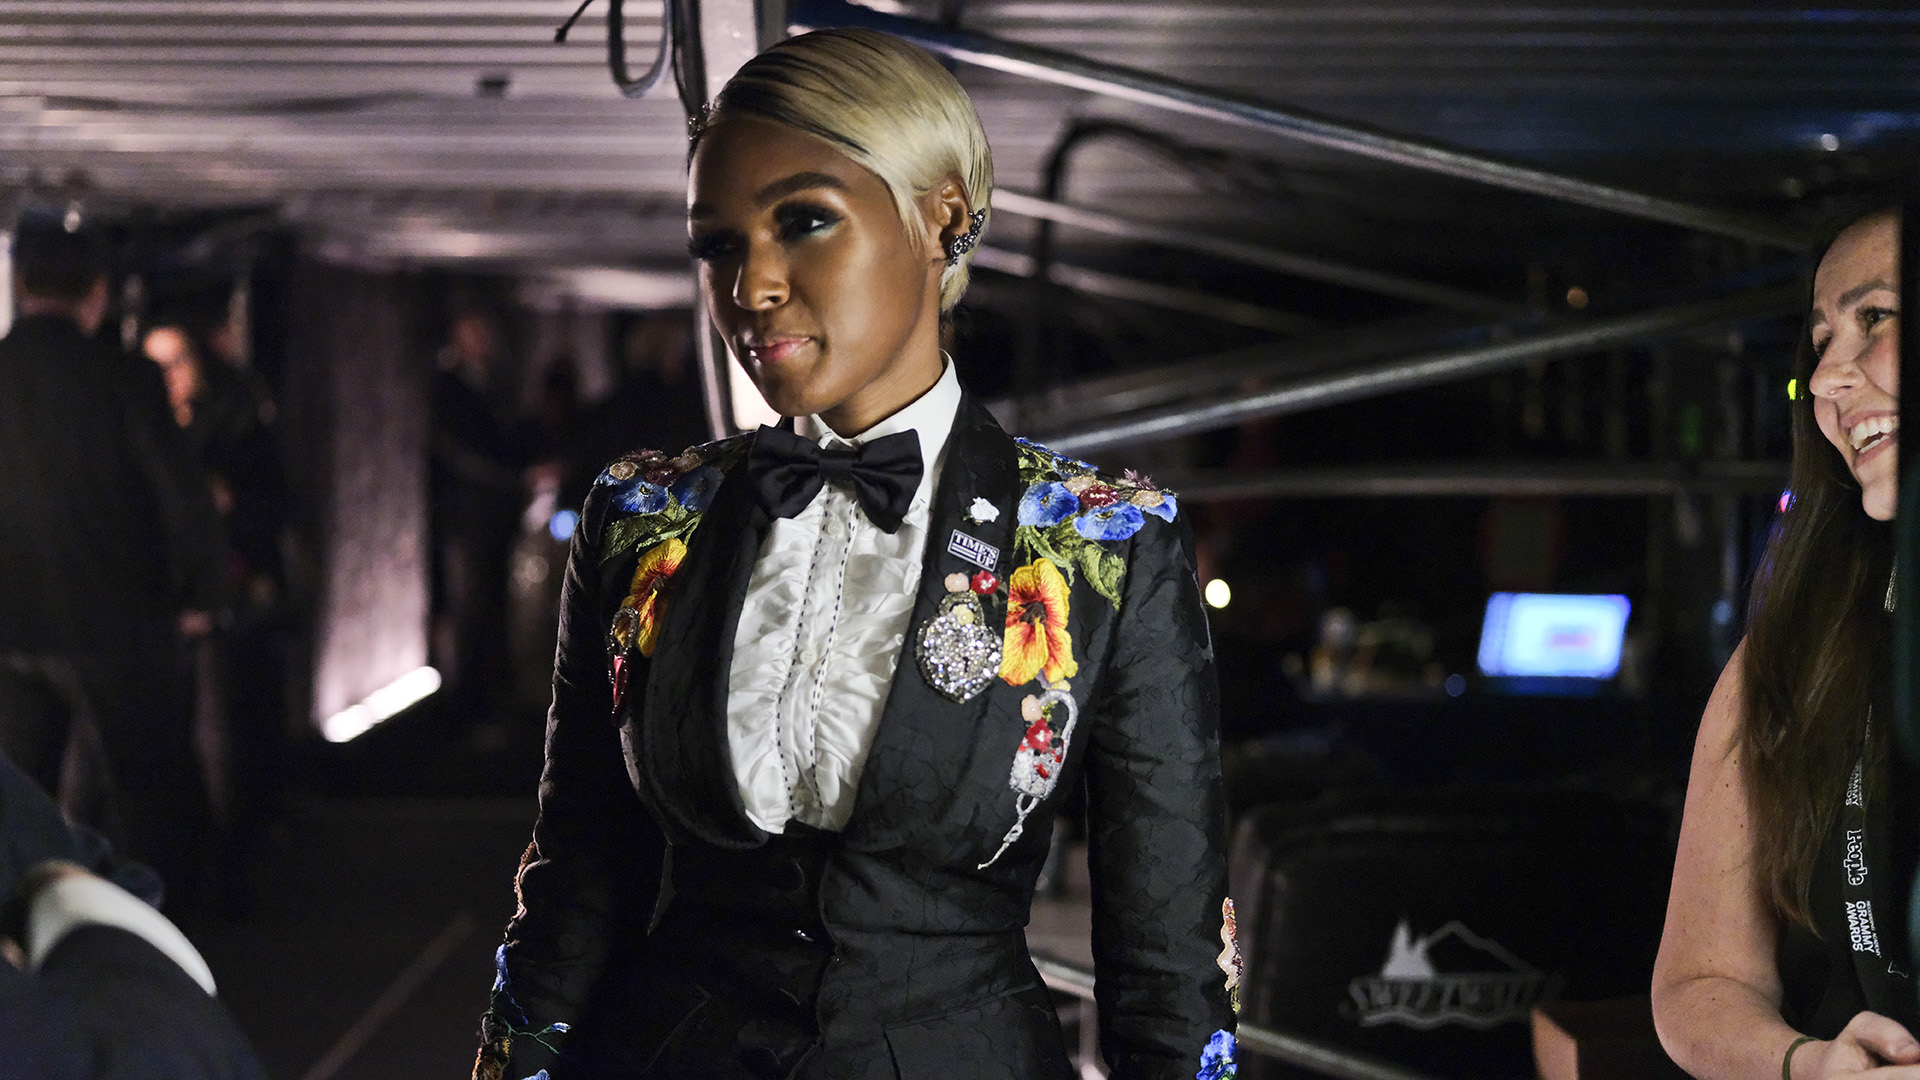 Singer-actress Janelle Monáe, who gave an inspiring speech at the 60th Annual GRAMMY Awards, offers a small smile in her stunning floral tux.